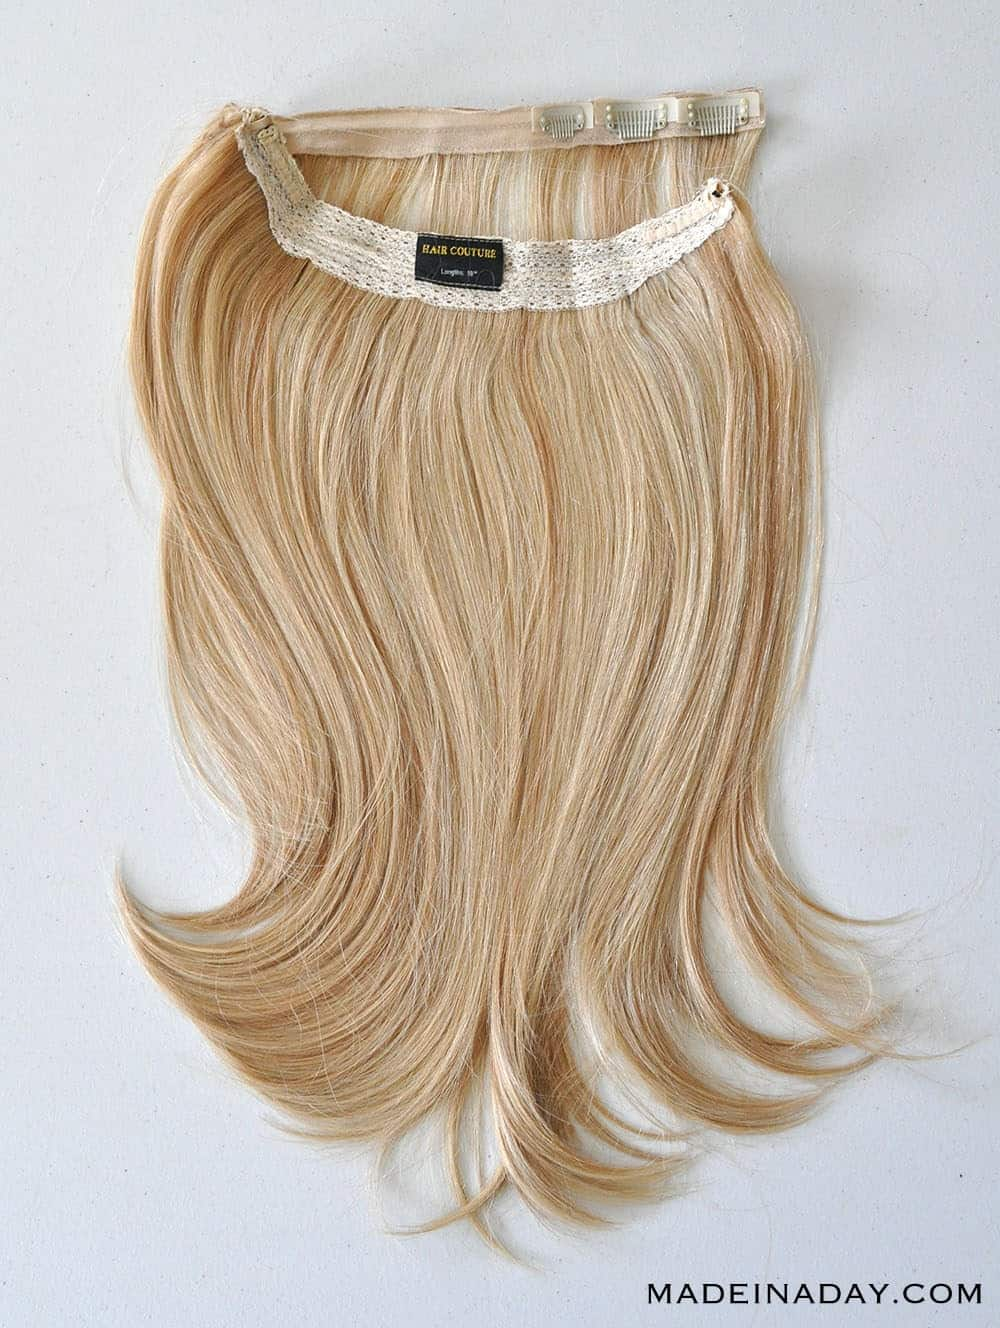 """HAIR COUTURE SMART HAIR 18"""" HALO IN CARAMEL BLONDE, adding volume to thin hair with a halo"""